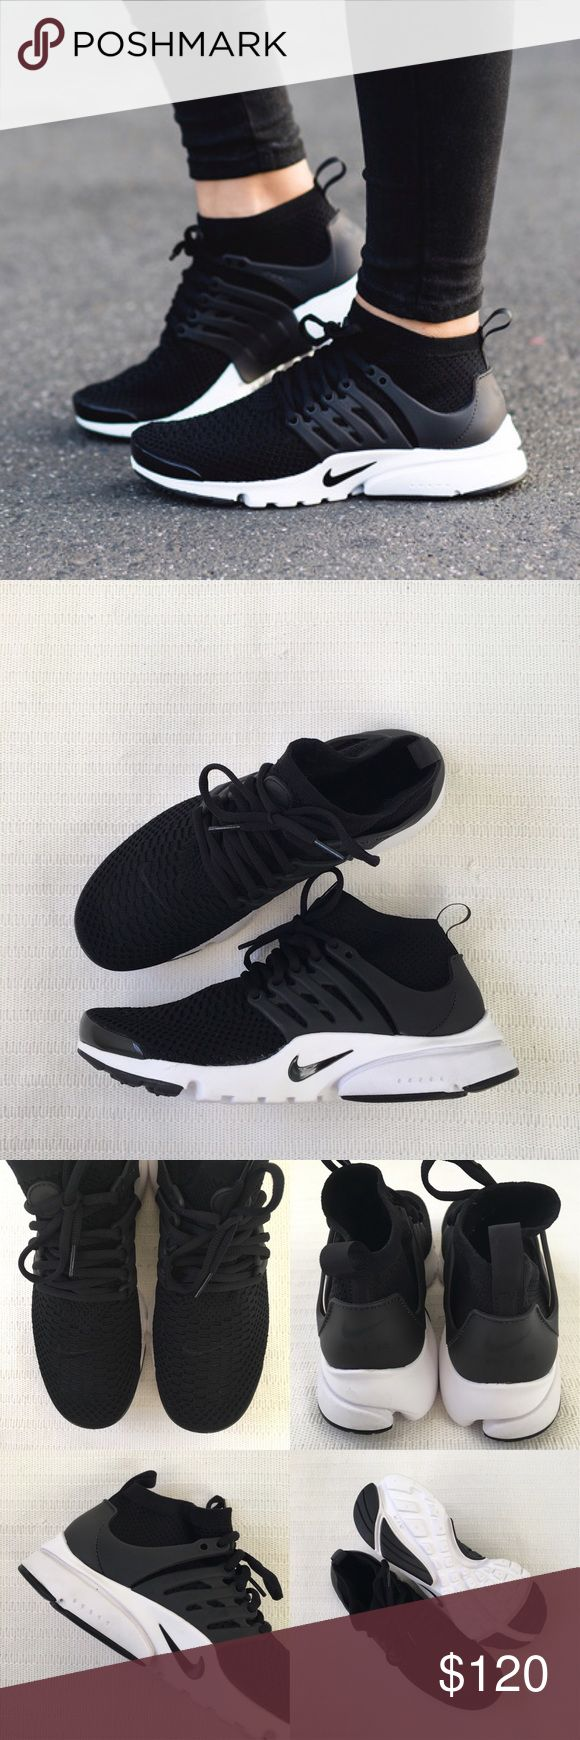 Women's Nike Air Presto Ultra Flyknit Sneakers Women's Nike Air Presto Ultra Flyknit Black Sneakers Style/Color: 833860-101  • Women's size 9  • NEW in box (no lid) • No trades •100% authentic Nike Shoes Sneakers